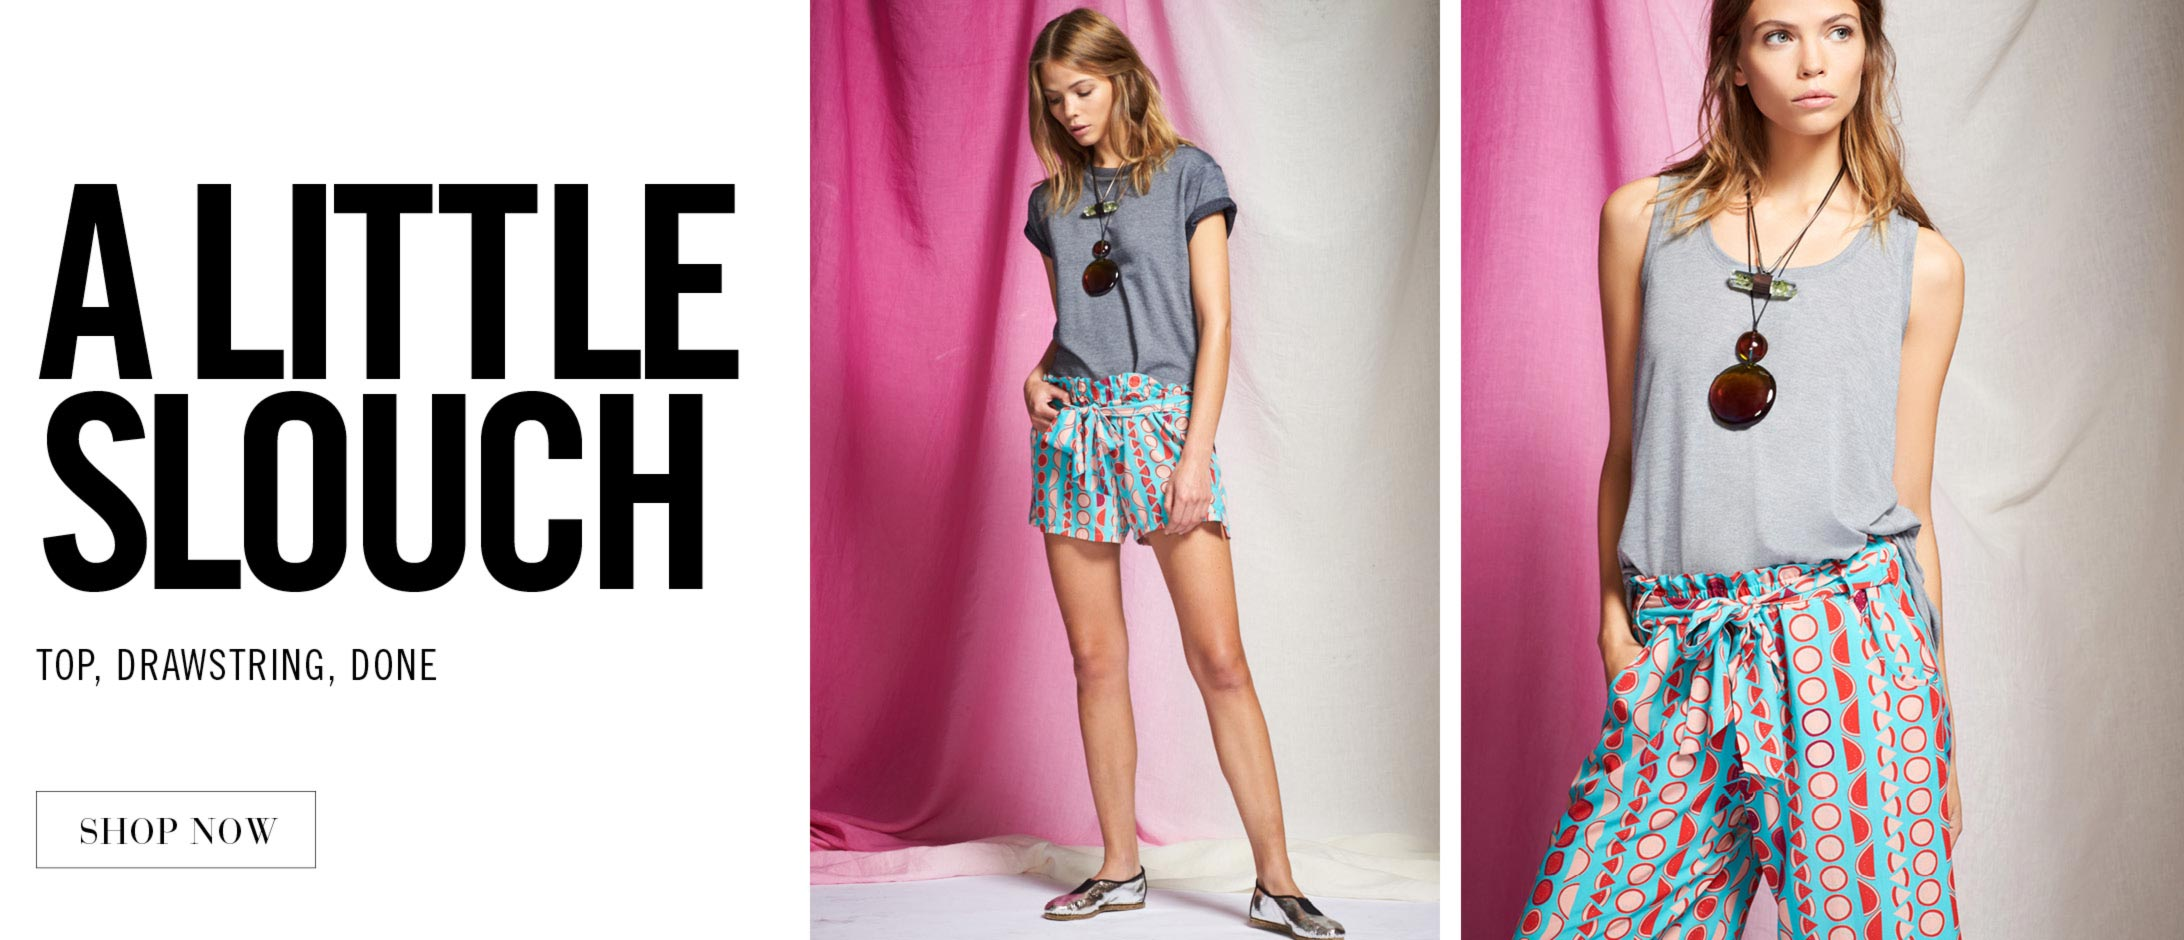 Josie: Printed & Playful with a Little Slouch